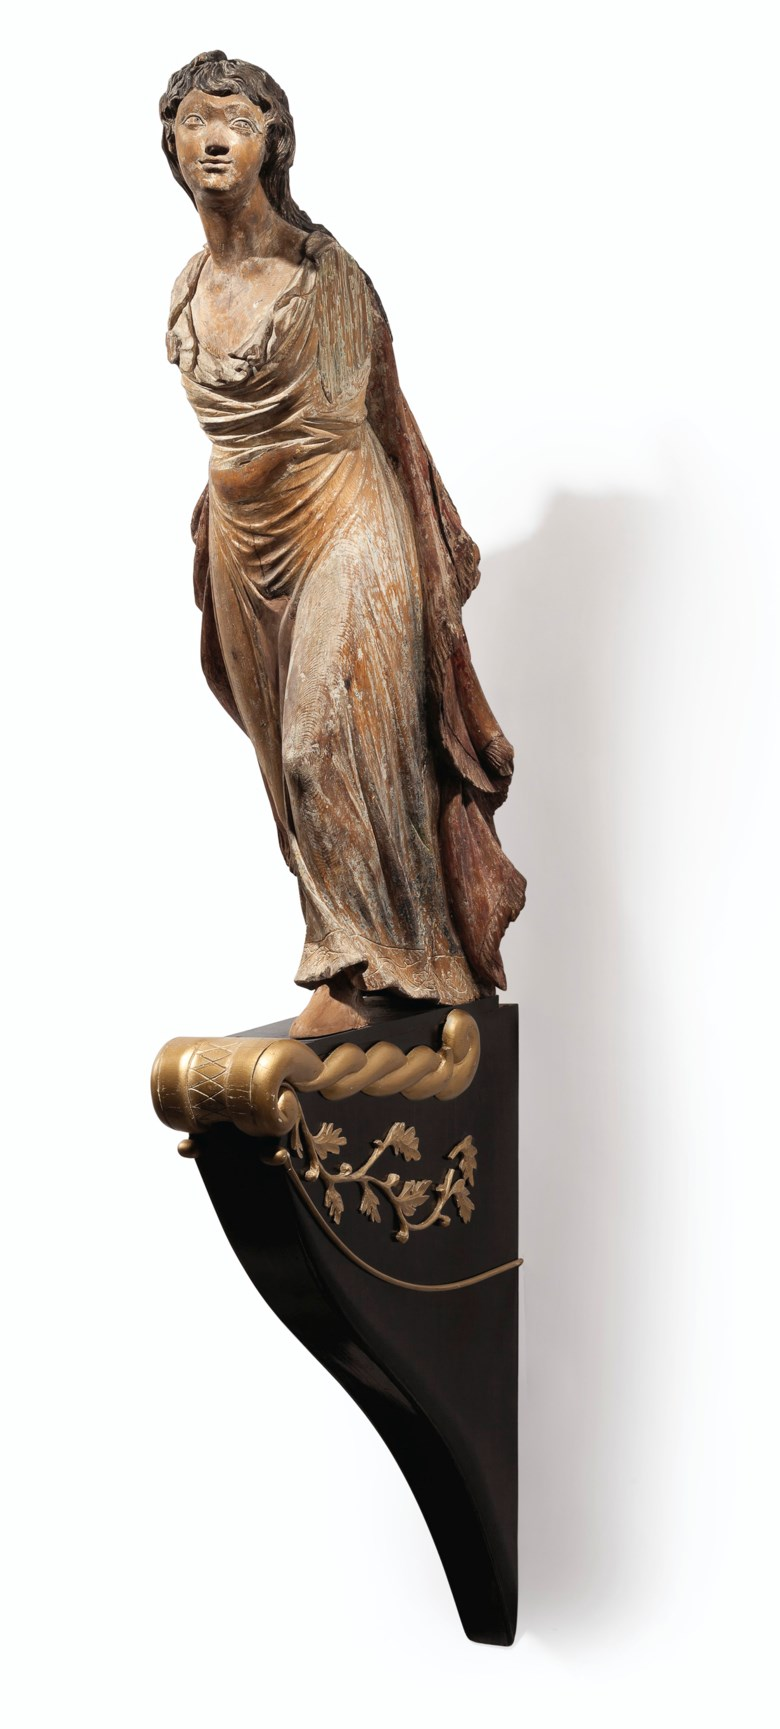 A carved pine ships figurehead of a young woman, attributed to William Rush (1756-1833), Philadelphia, c. 1809. 46½ in high, 15 in wide, 17½ in deep. Estimate $30,000-50,000. This lot is offered in Important American Furniture, Silver, Maritime, Folk and Outsider Art on 20 September 2017  at Christie's in New York